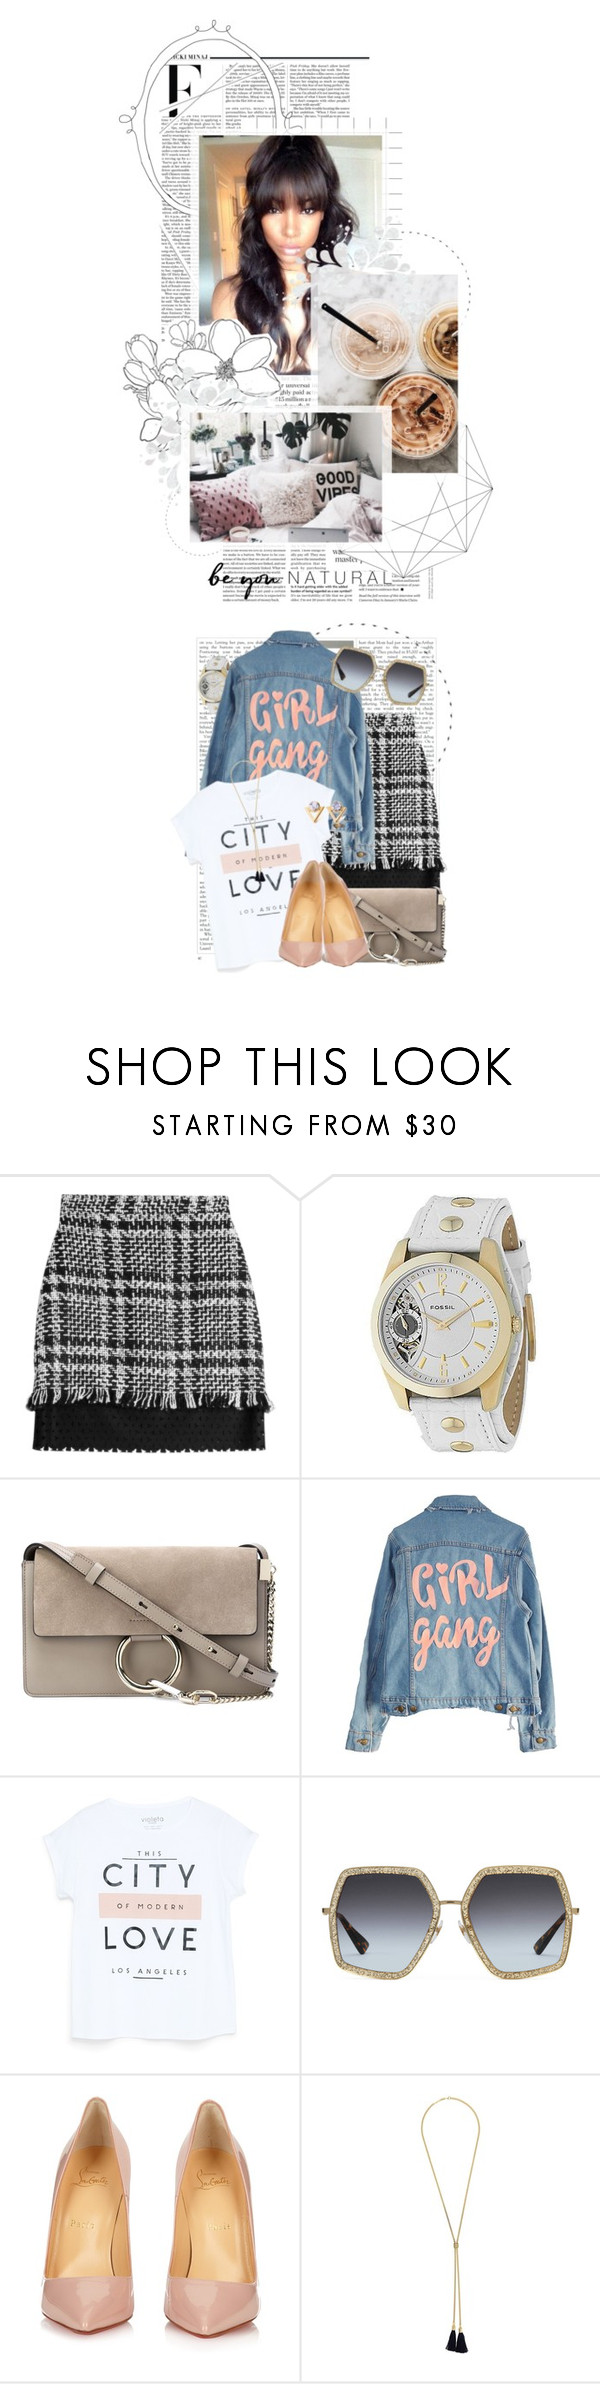 """City Love. Girl Gang. For Musicfrend1"" by crystal85 ❤ liked on Polyvore featuring Nicki Minaj, MSGM, FOSSIL, Chloé, High Heels Suicide, MANGO, Gucci, Christian Louboutin, GET LOST and Kakao By K"